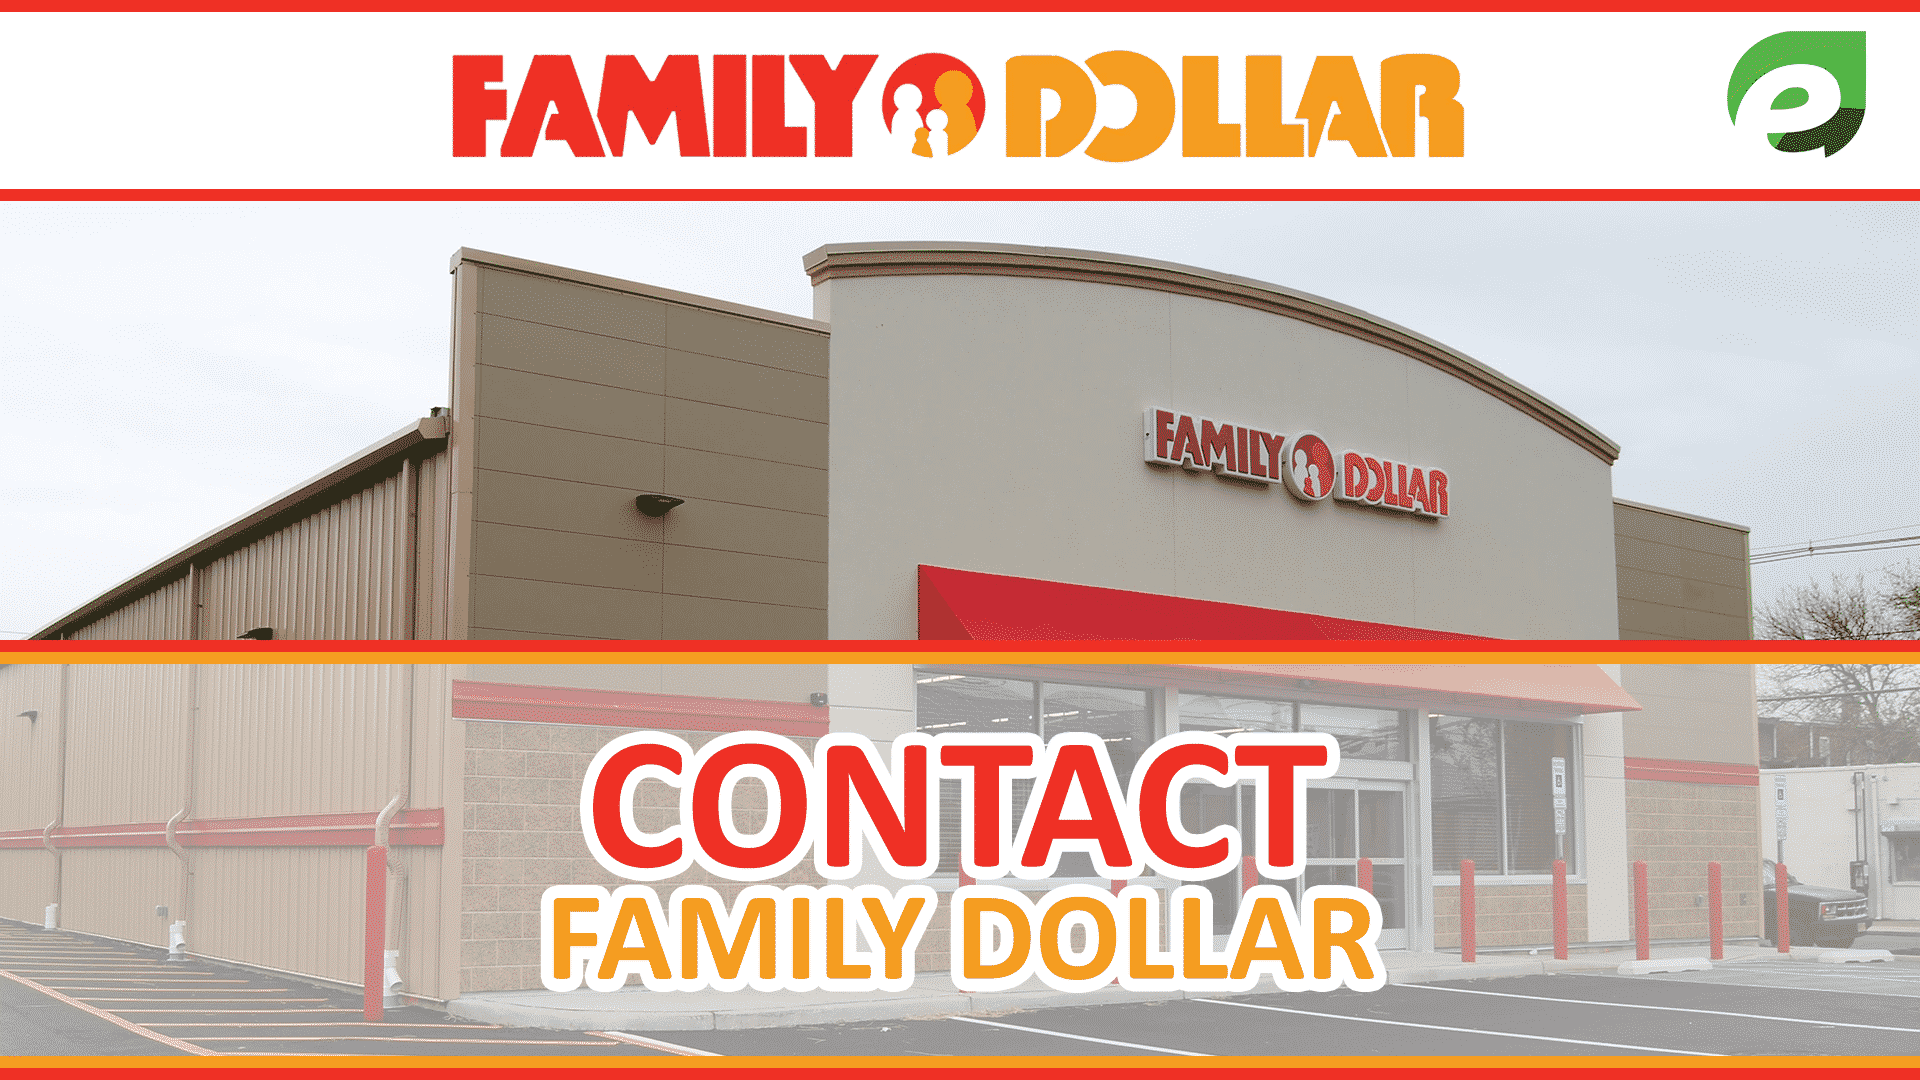 Family Dollar Survey: Enter www.ratefd.com to win $500 ...